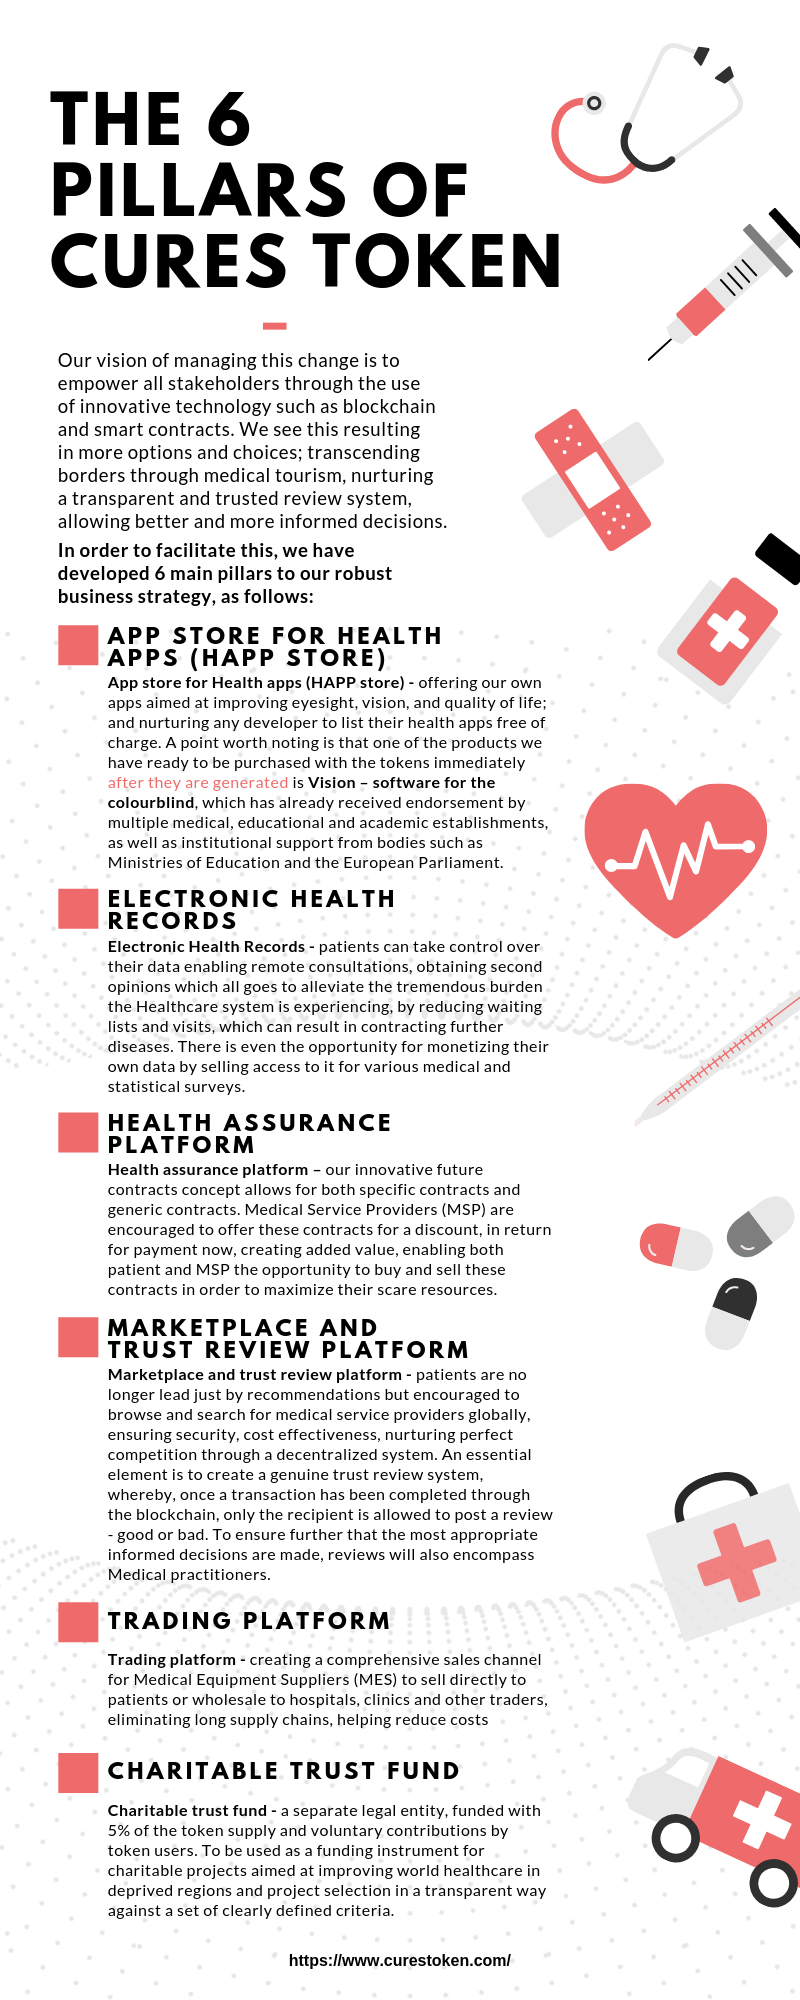 THE 6 PILLARS OF CURES TOKEN [INFOGRAPHIC] - Trhomeagent - Medium